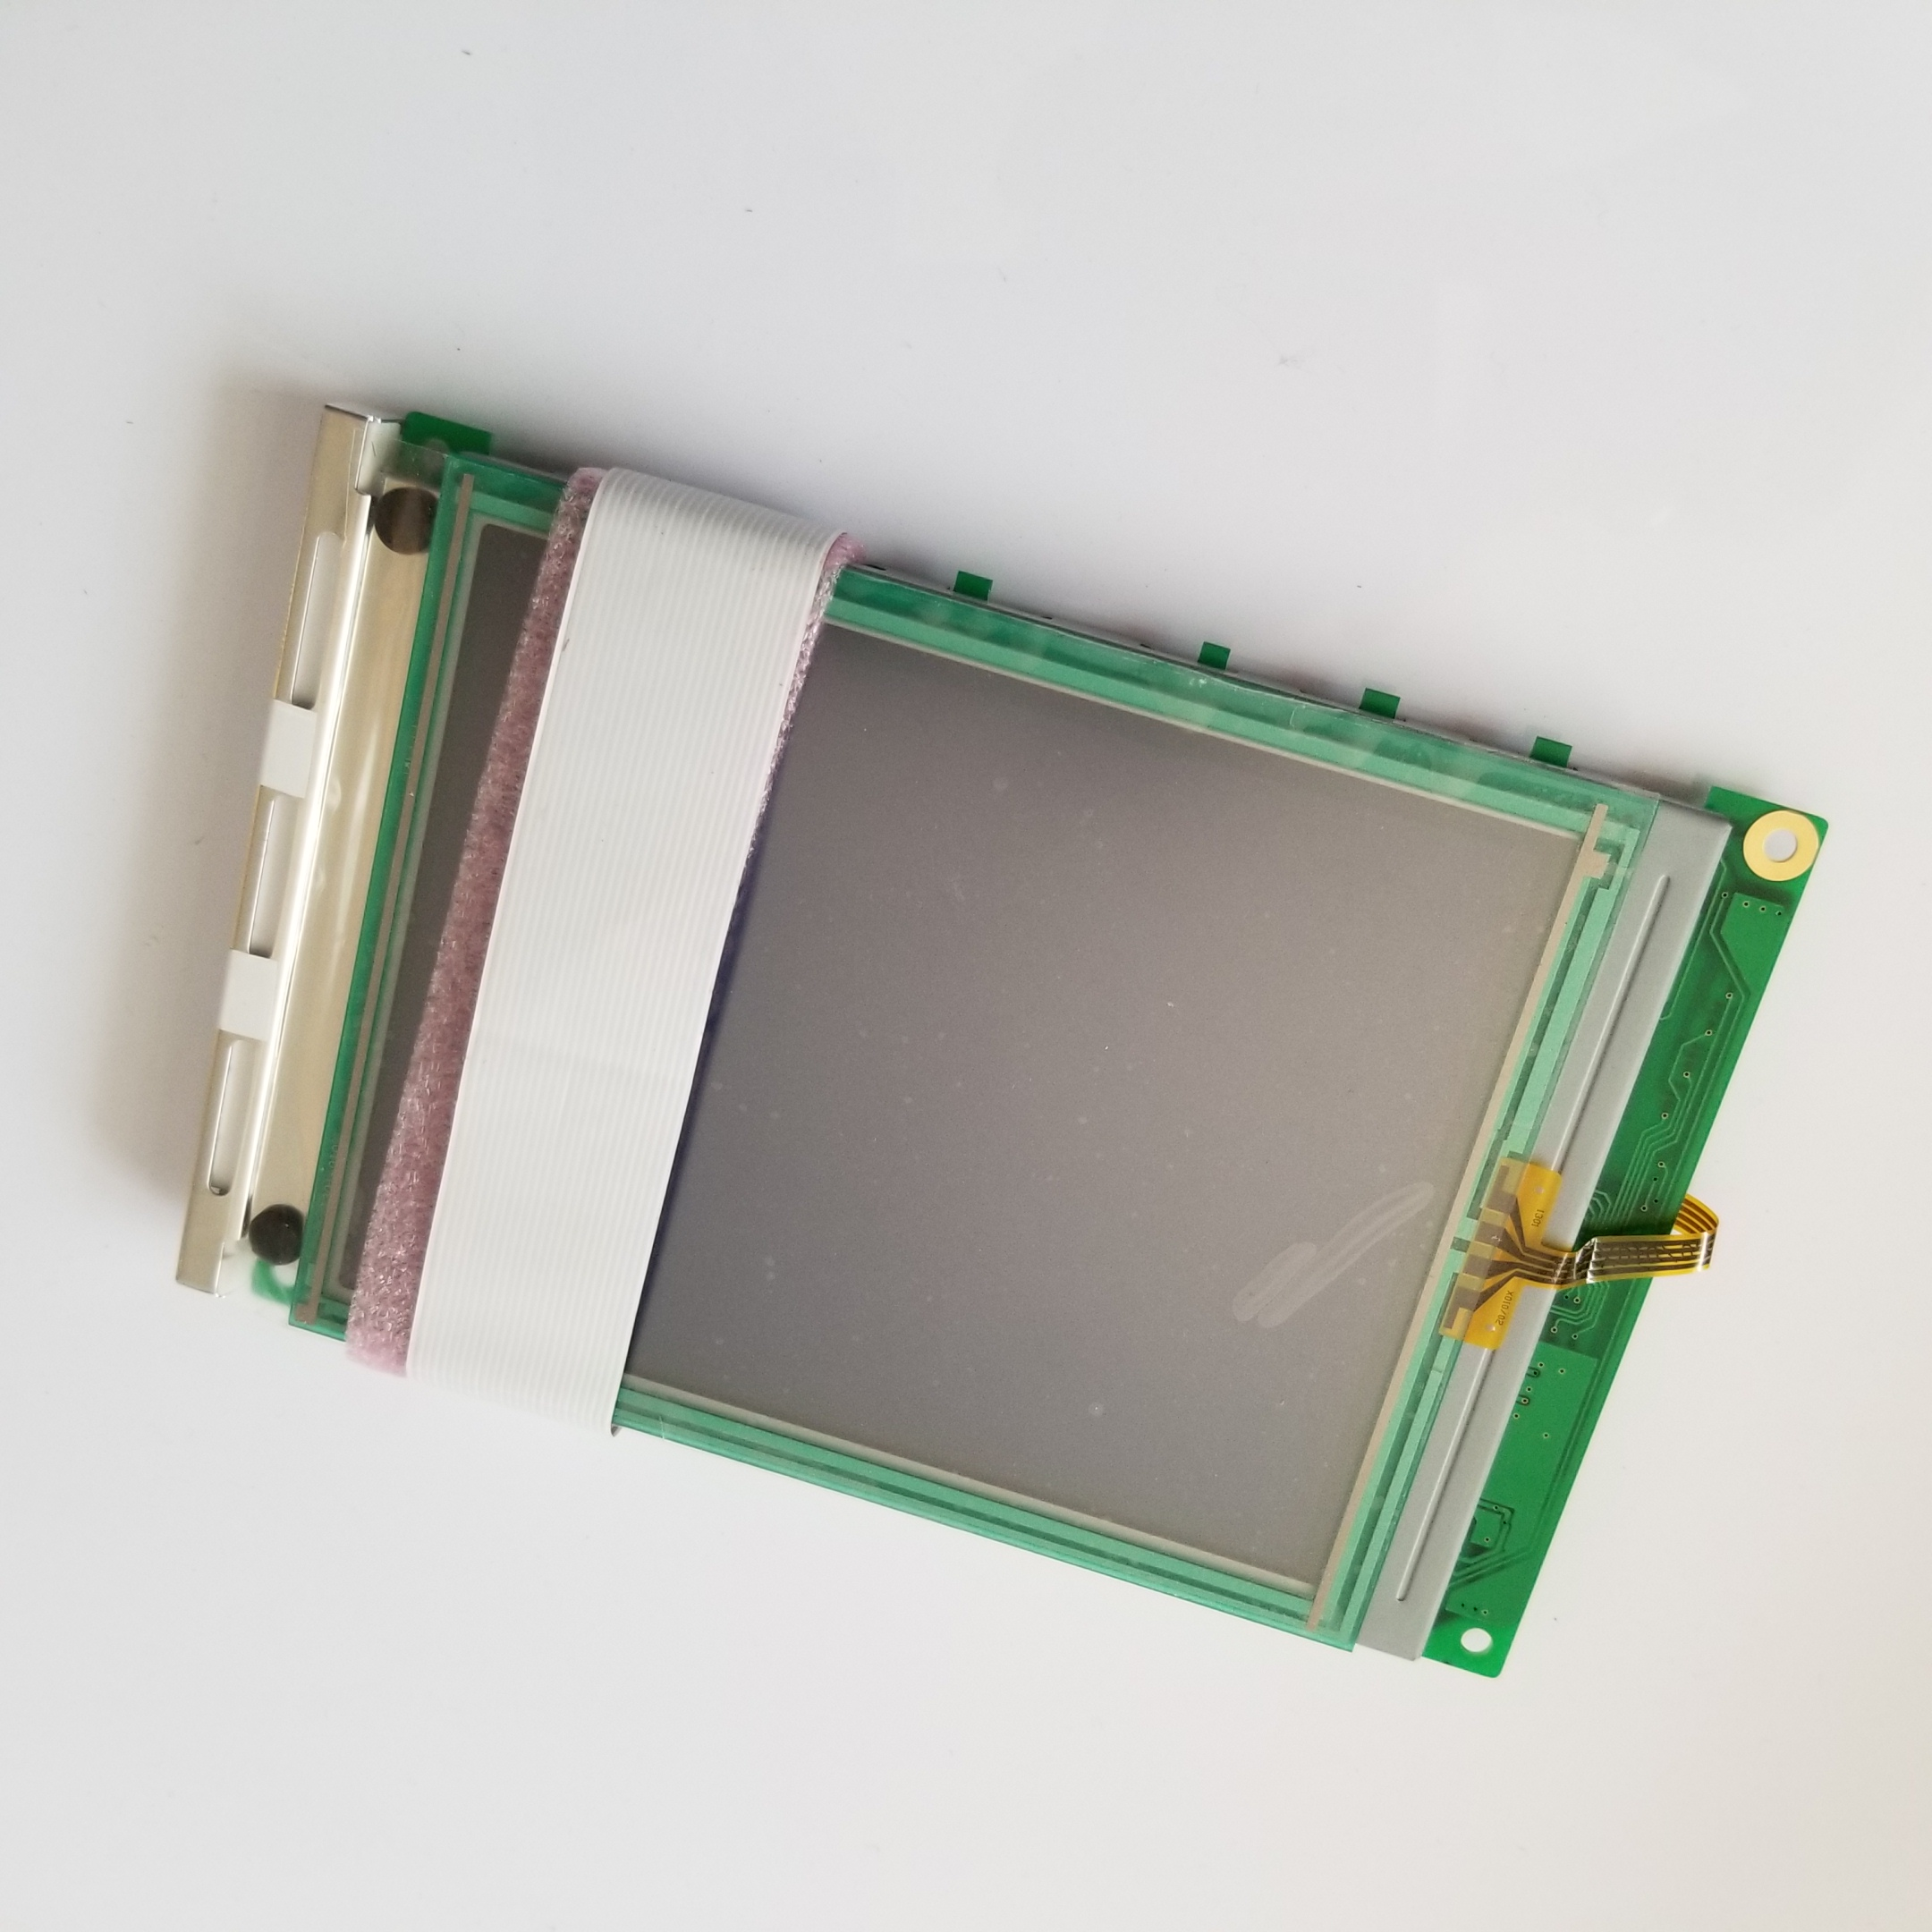 For Original 320240A4 AG320240A4 AG320240A1 Cable 24Pins AMPIRE Fire protection system LCD Panel Made in Taiwan